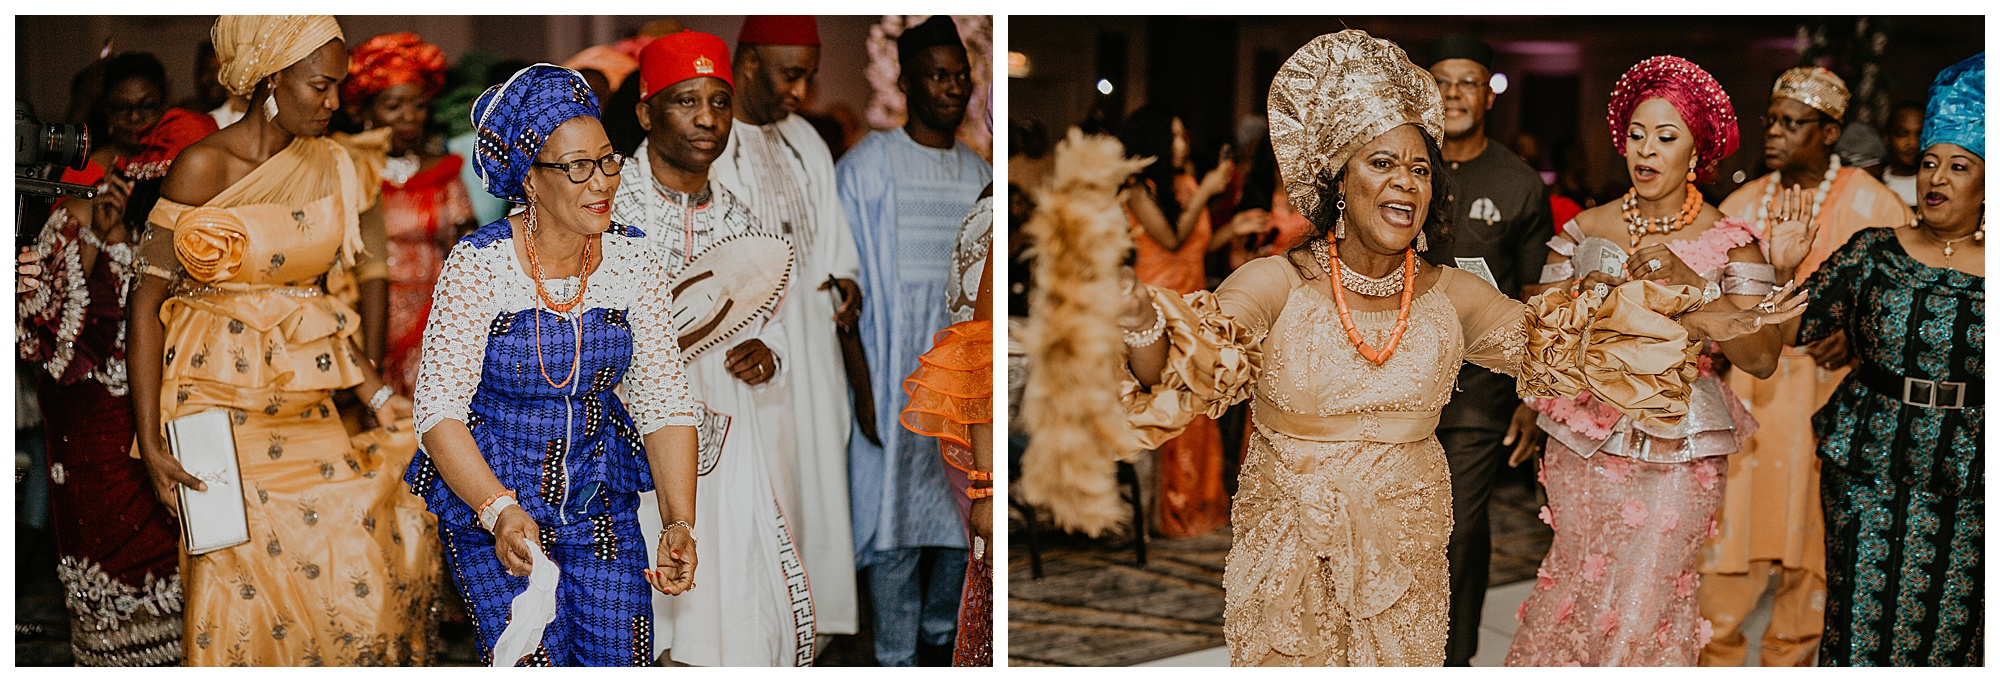 NigerianWeddingReception.jpg